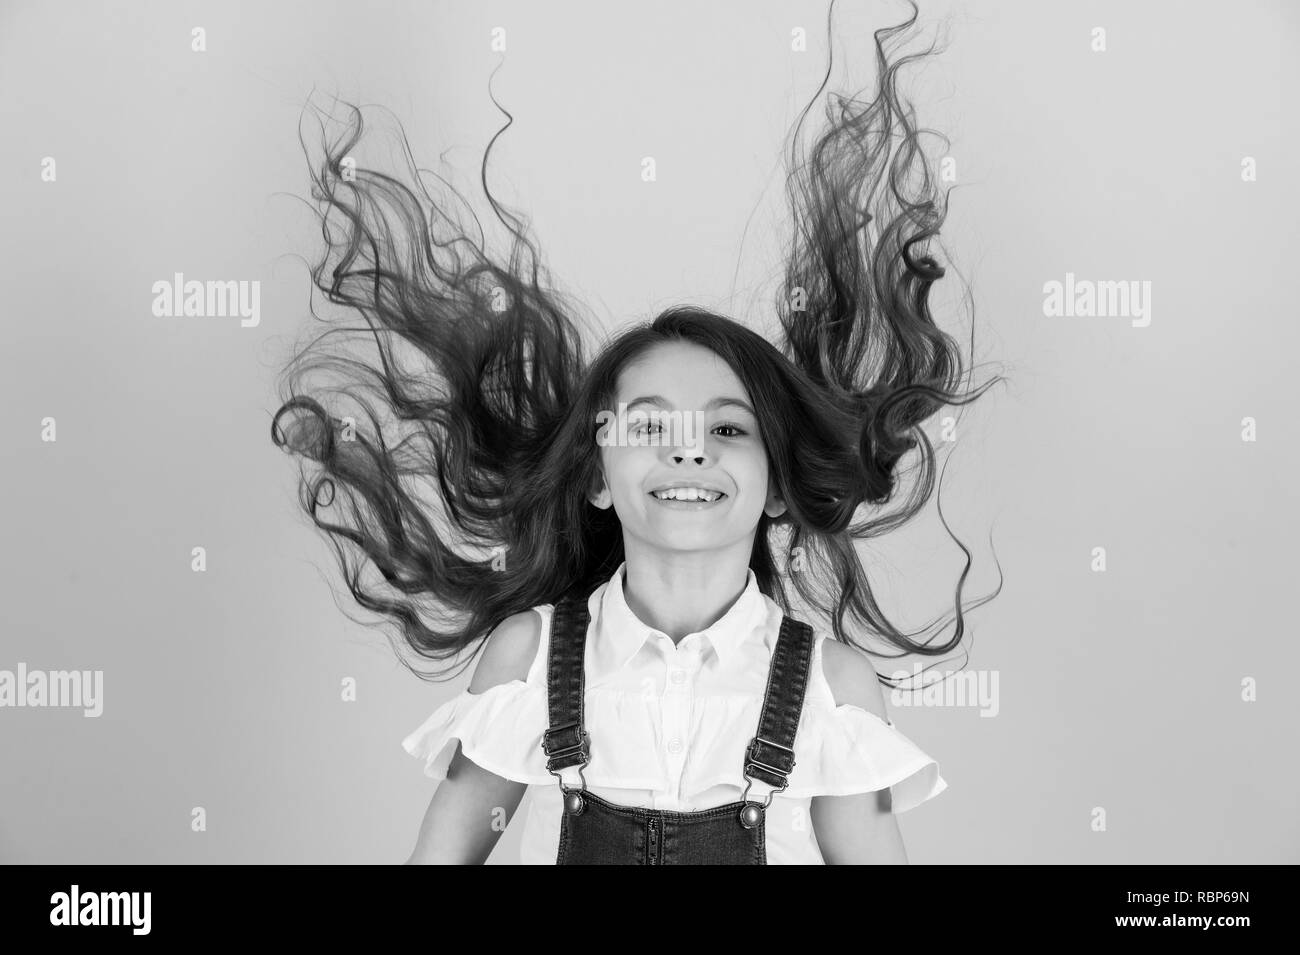 Haircare, hairstyle, hairdresser, barber. Girl smile with flying hair on blue background. Child smiling with long healthy hair. Beauty salon concept, punchy pastel - Stock Image